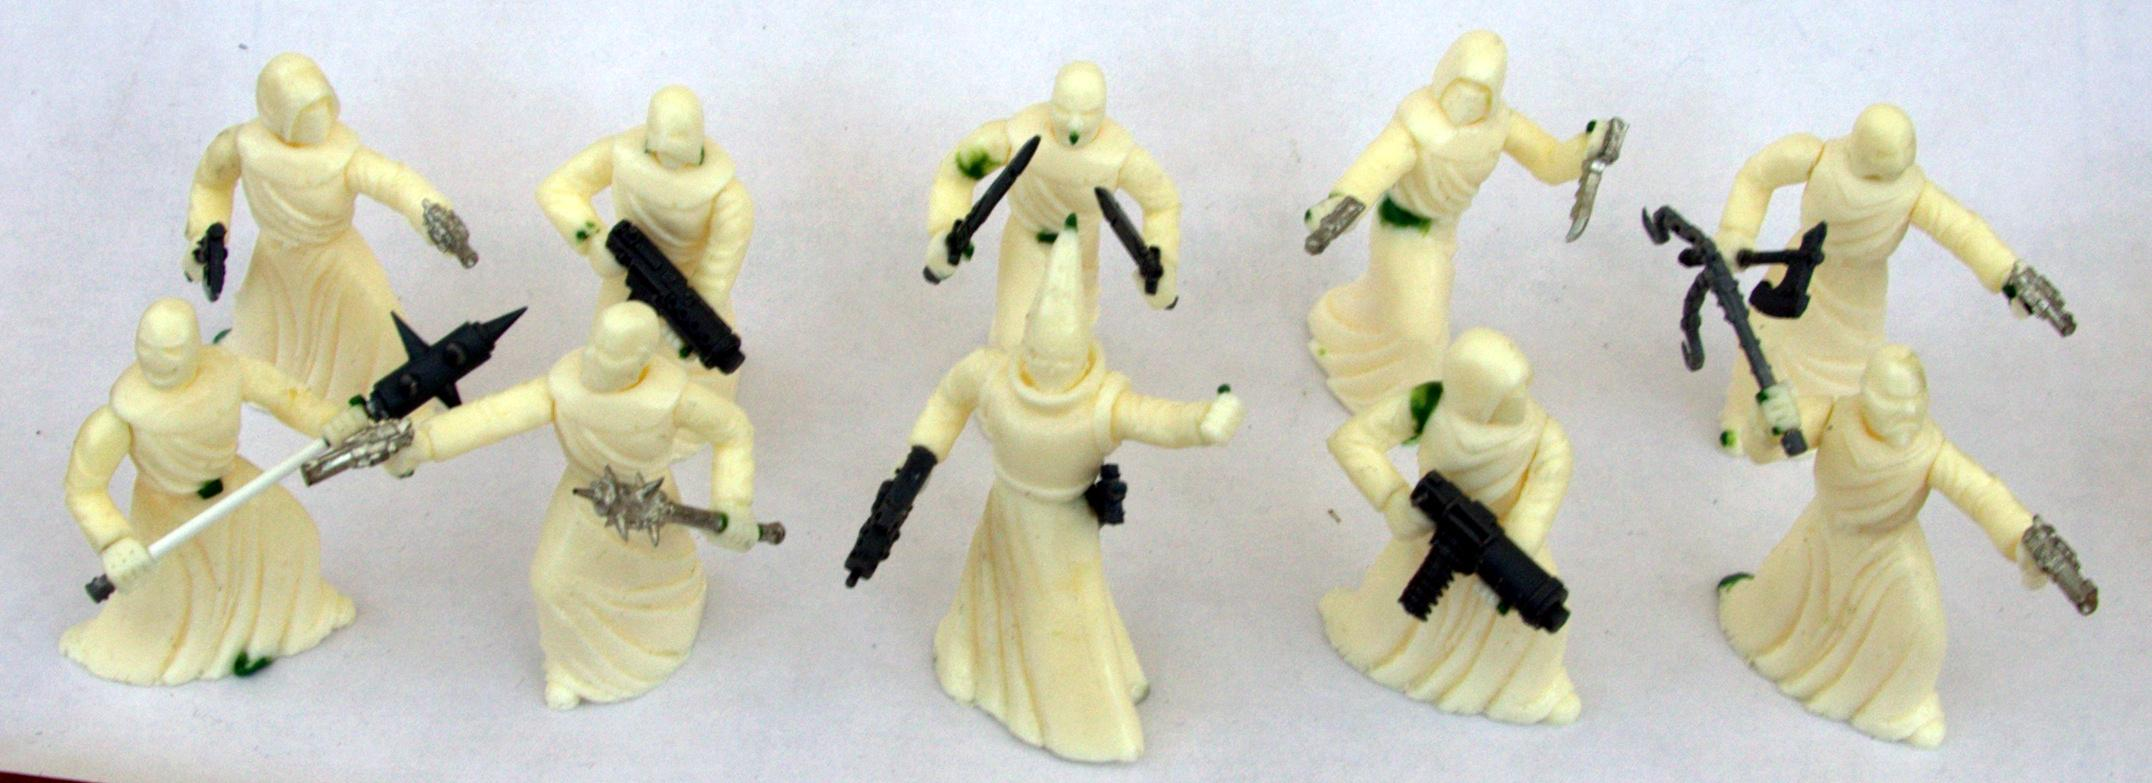 54mm, Cultists, Inquisitor, Warhammer 40,000